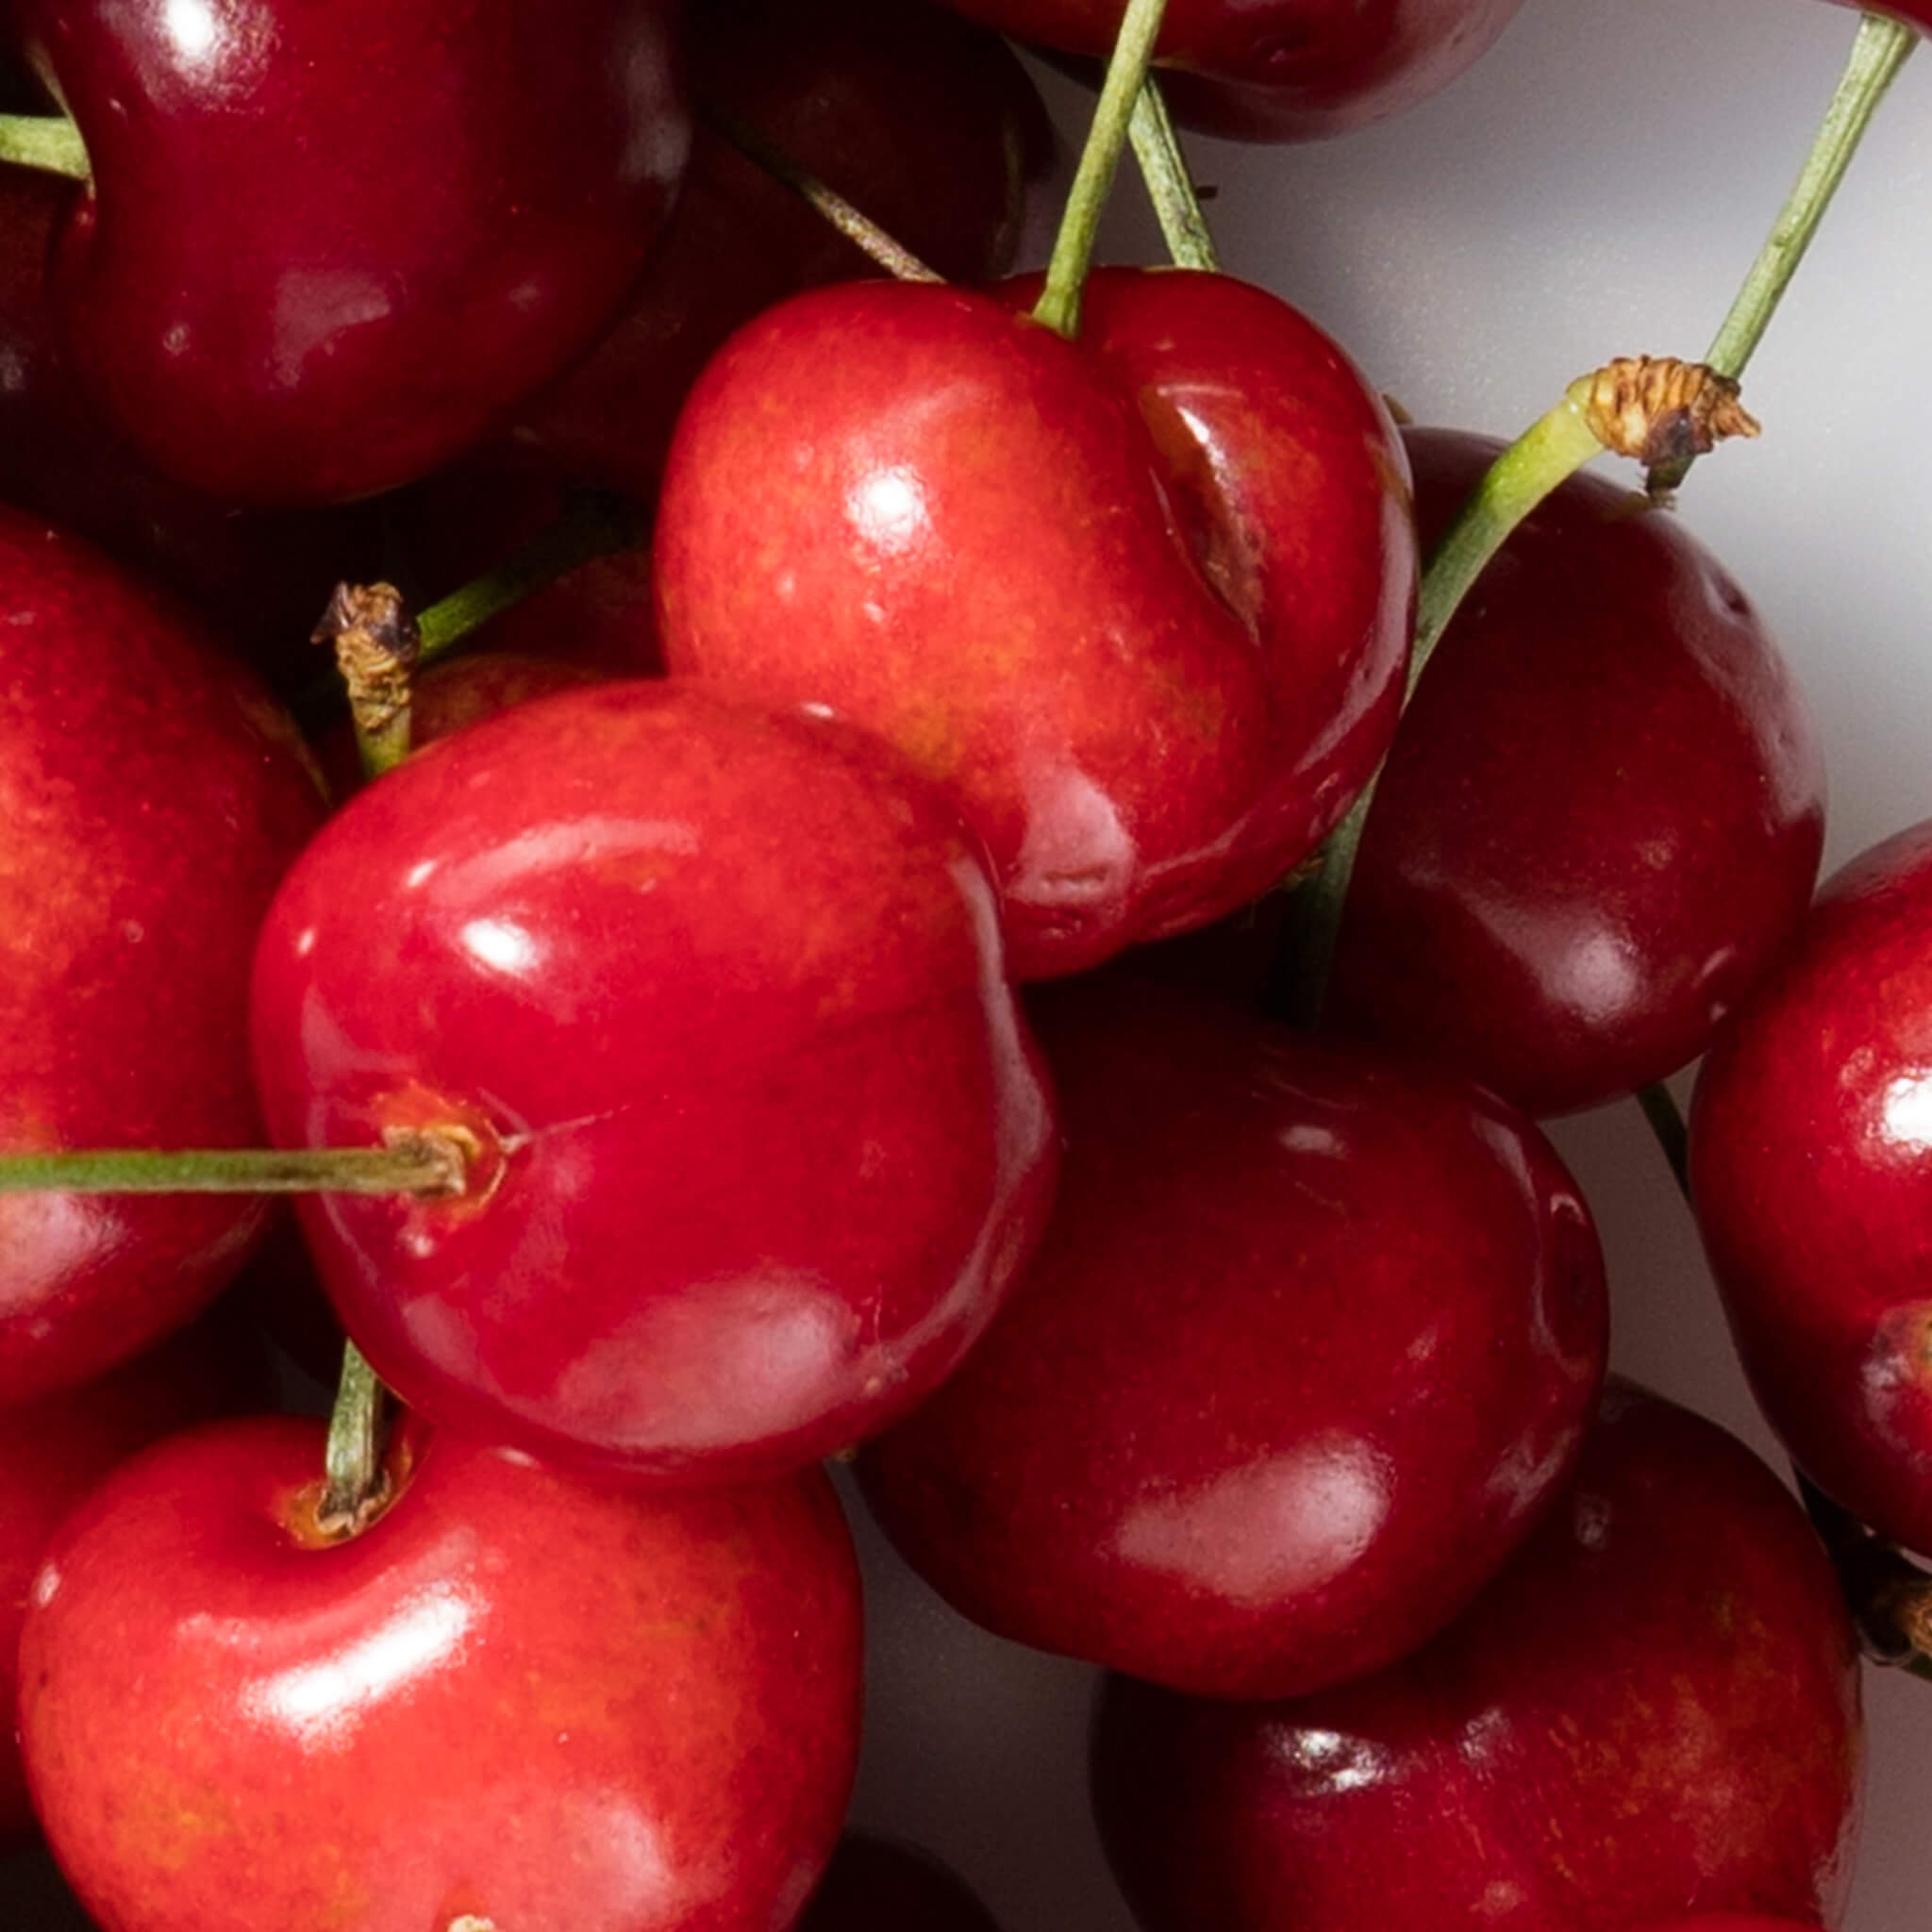 Product Page Key Ingredients: Cherry